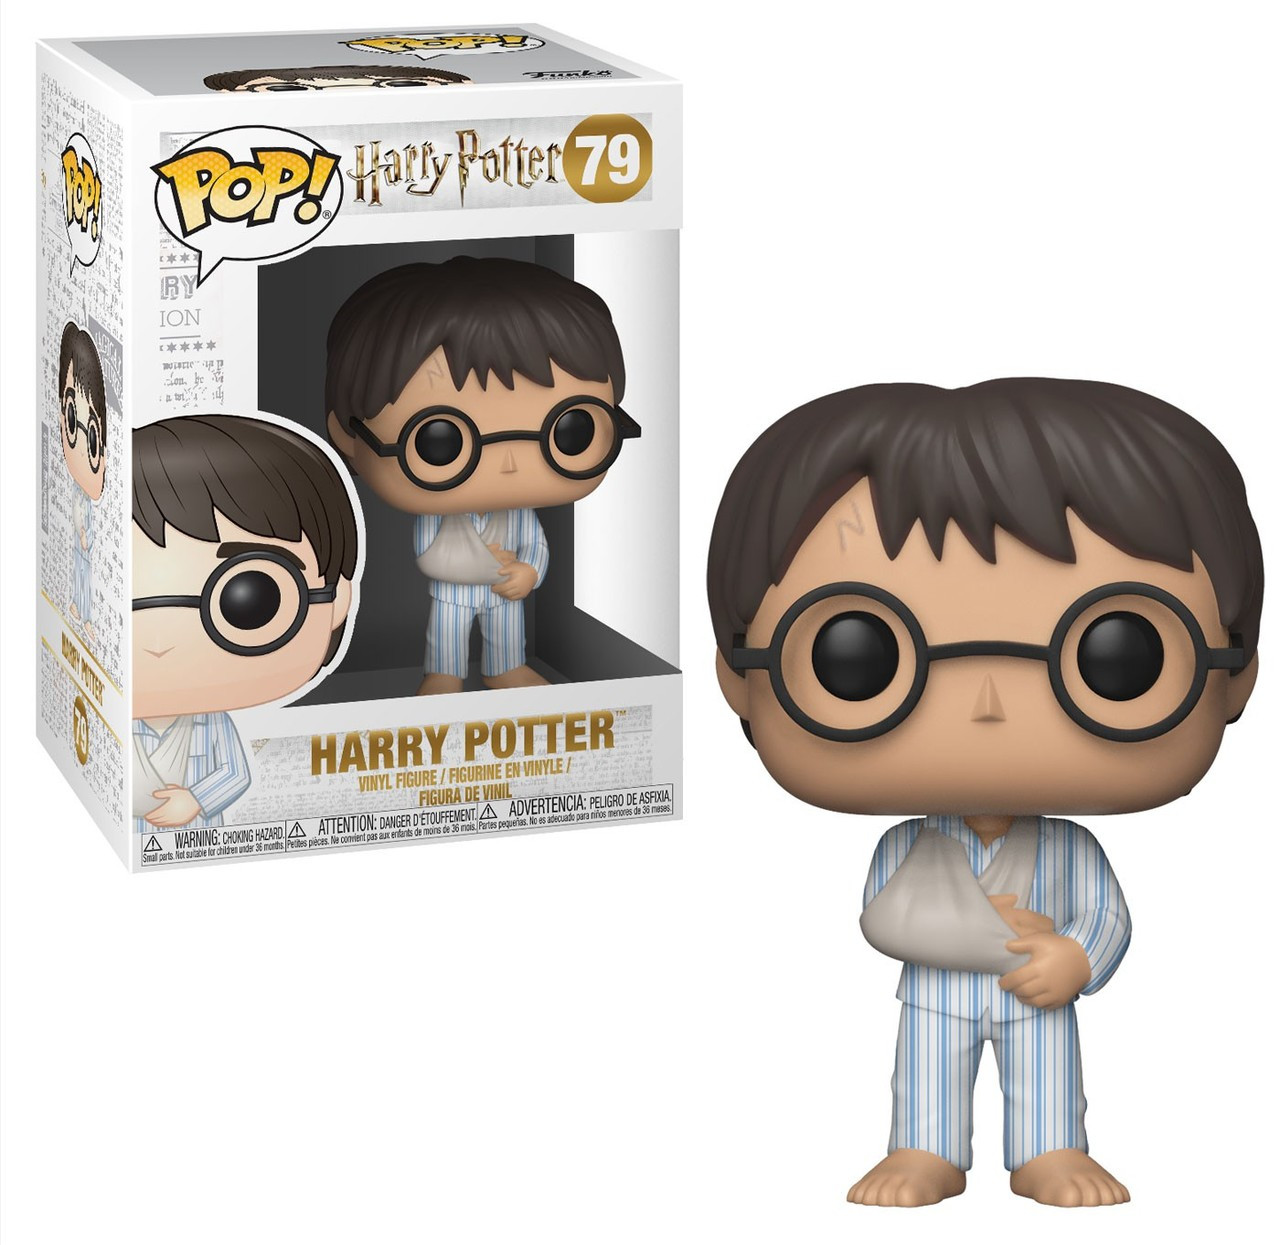 Harry Potter Dobby Snapping his Fingers Figure Pop